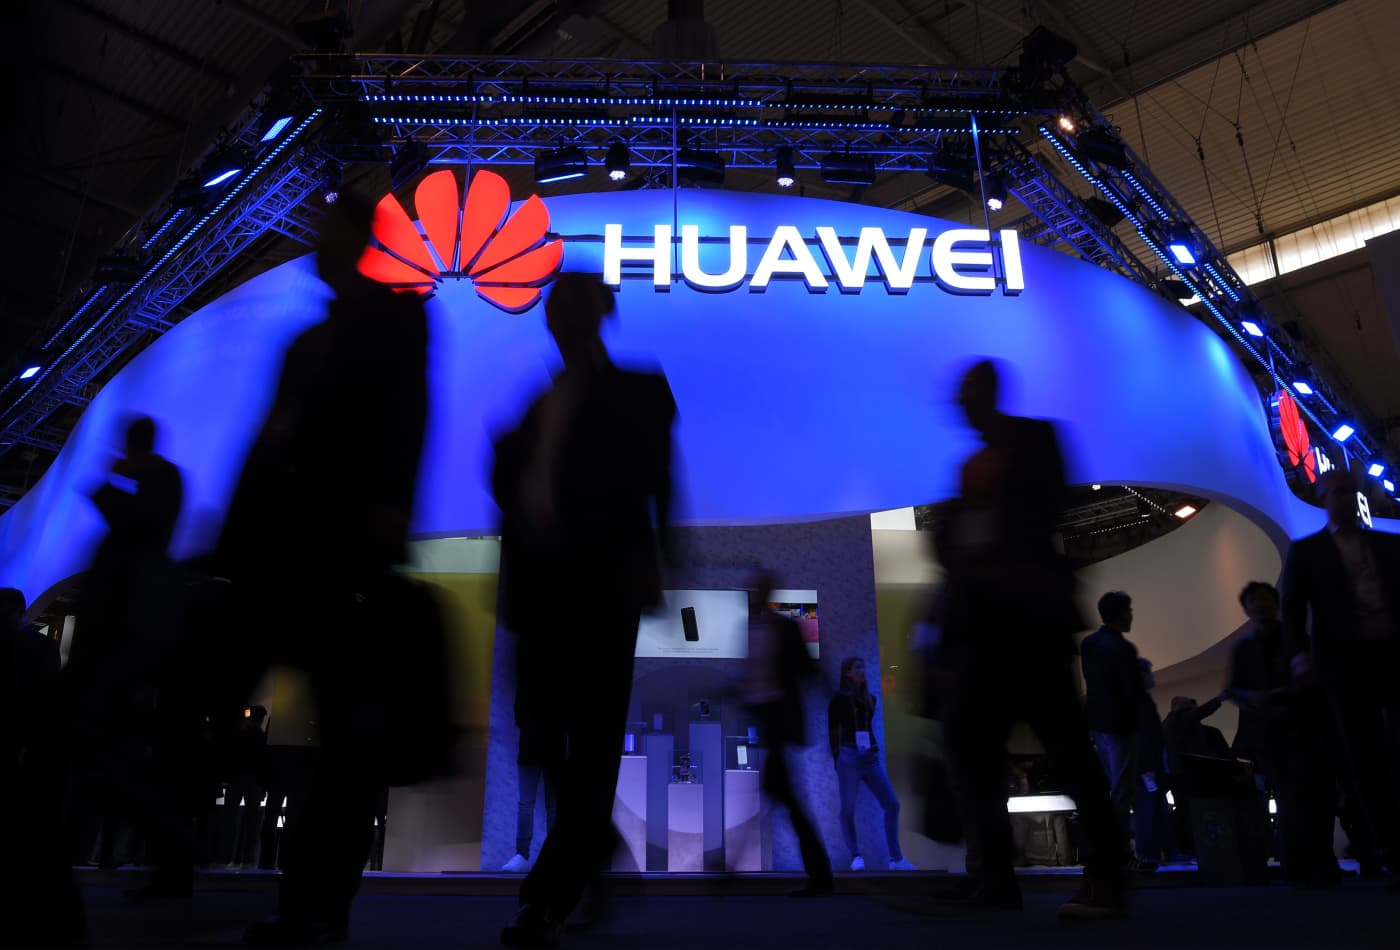 Huawei says US blacklisting led to $12 billion revenue shortfall in 2019 as profit growth slowed